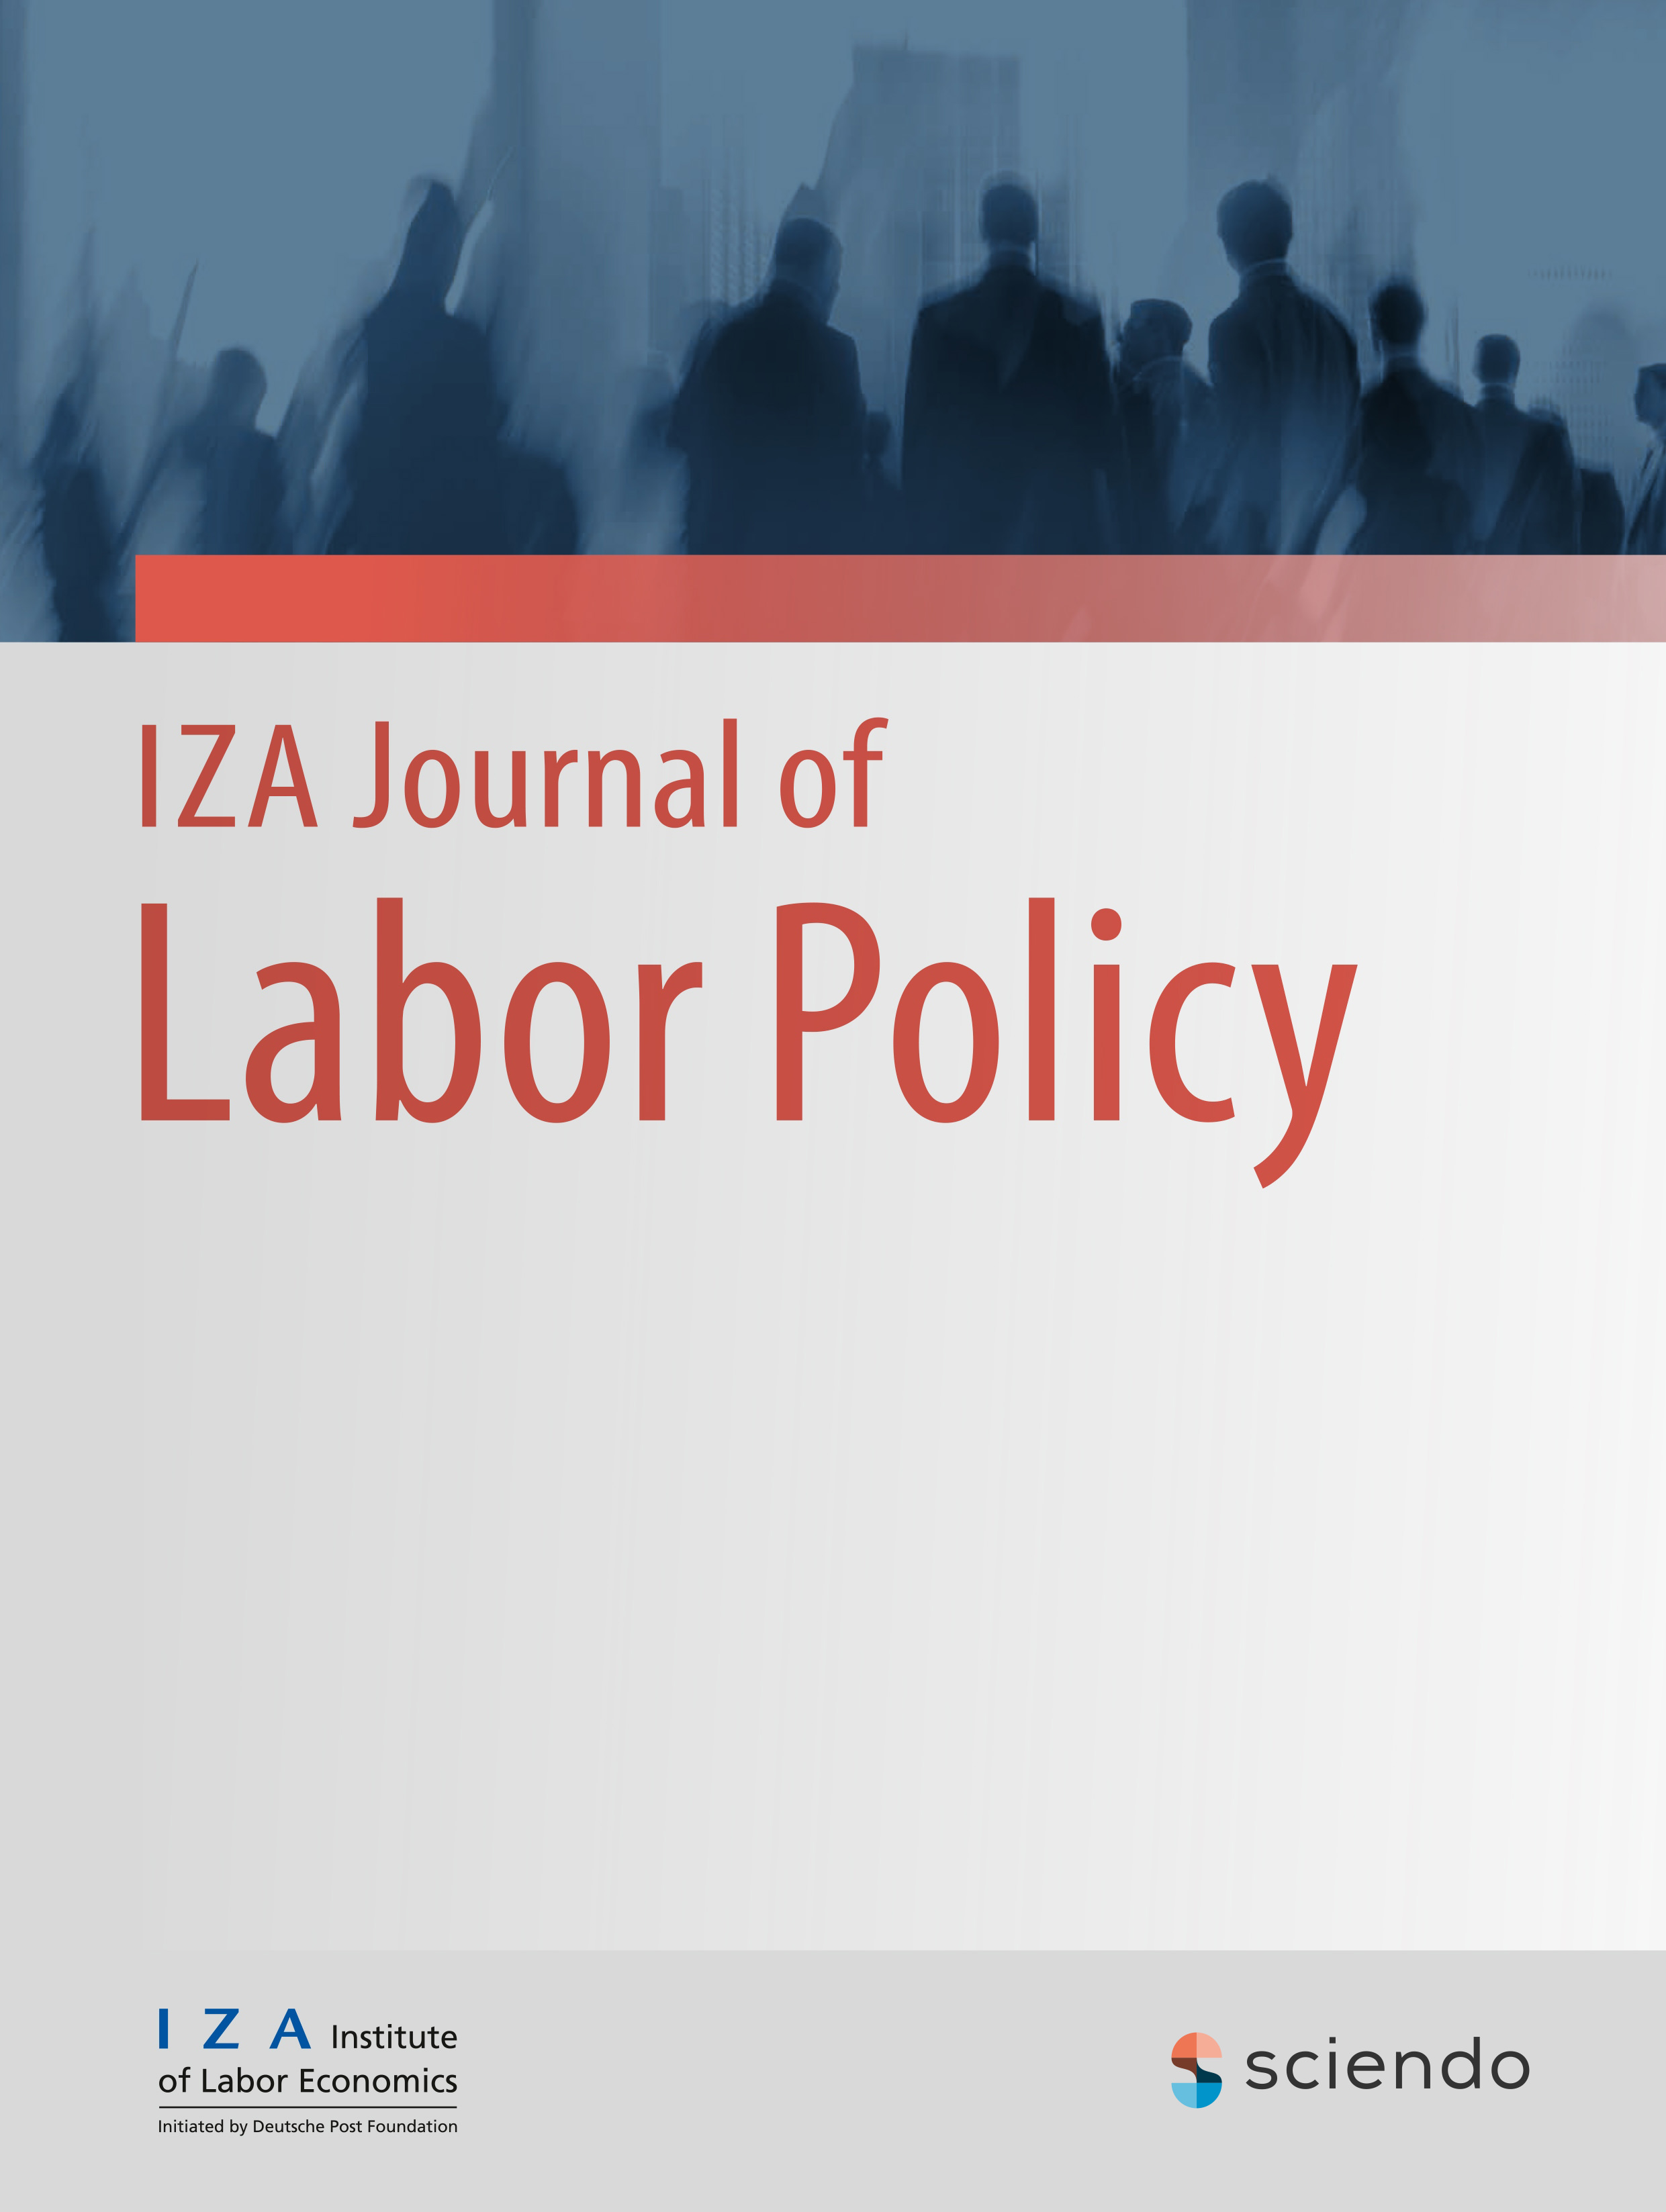 IZA Journal of Labor Policy